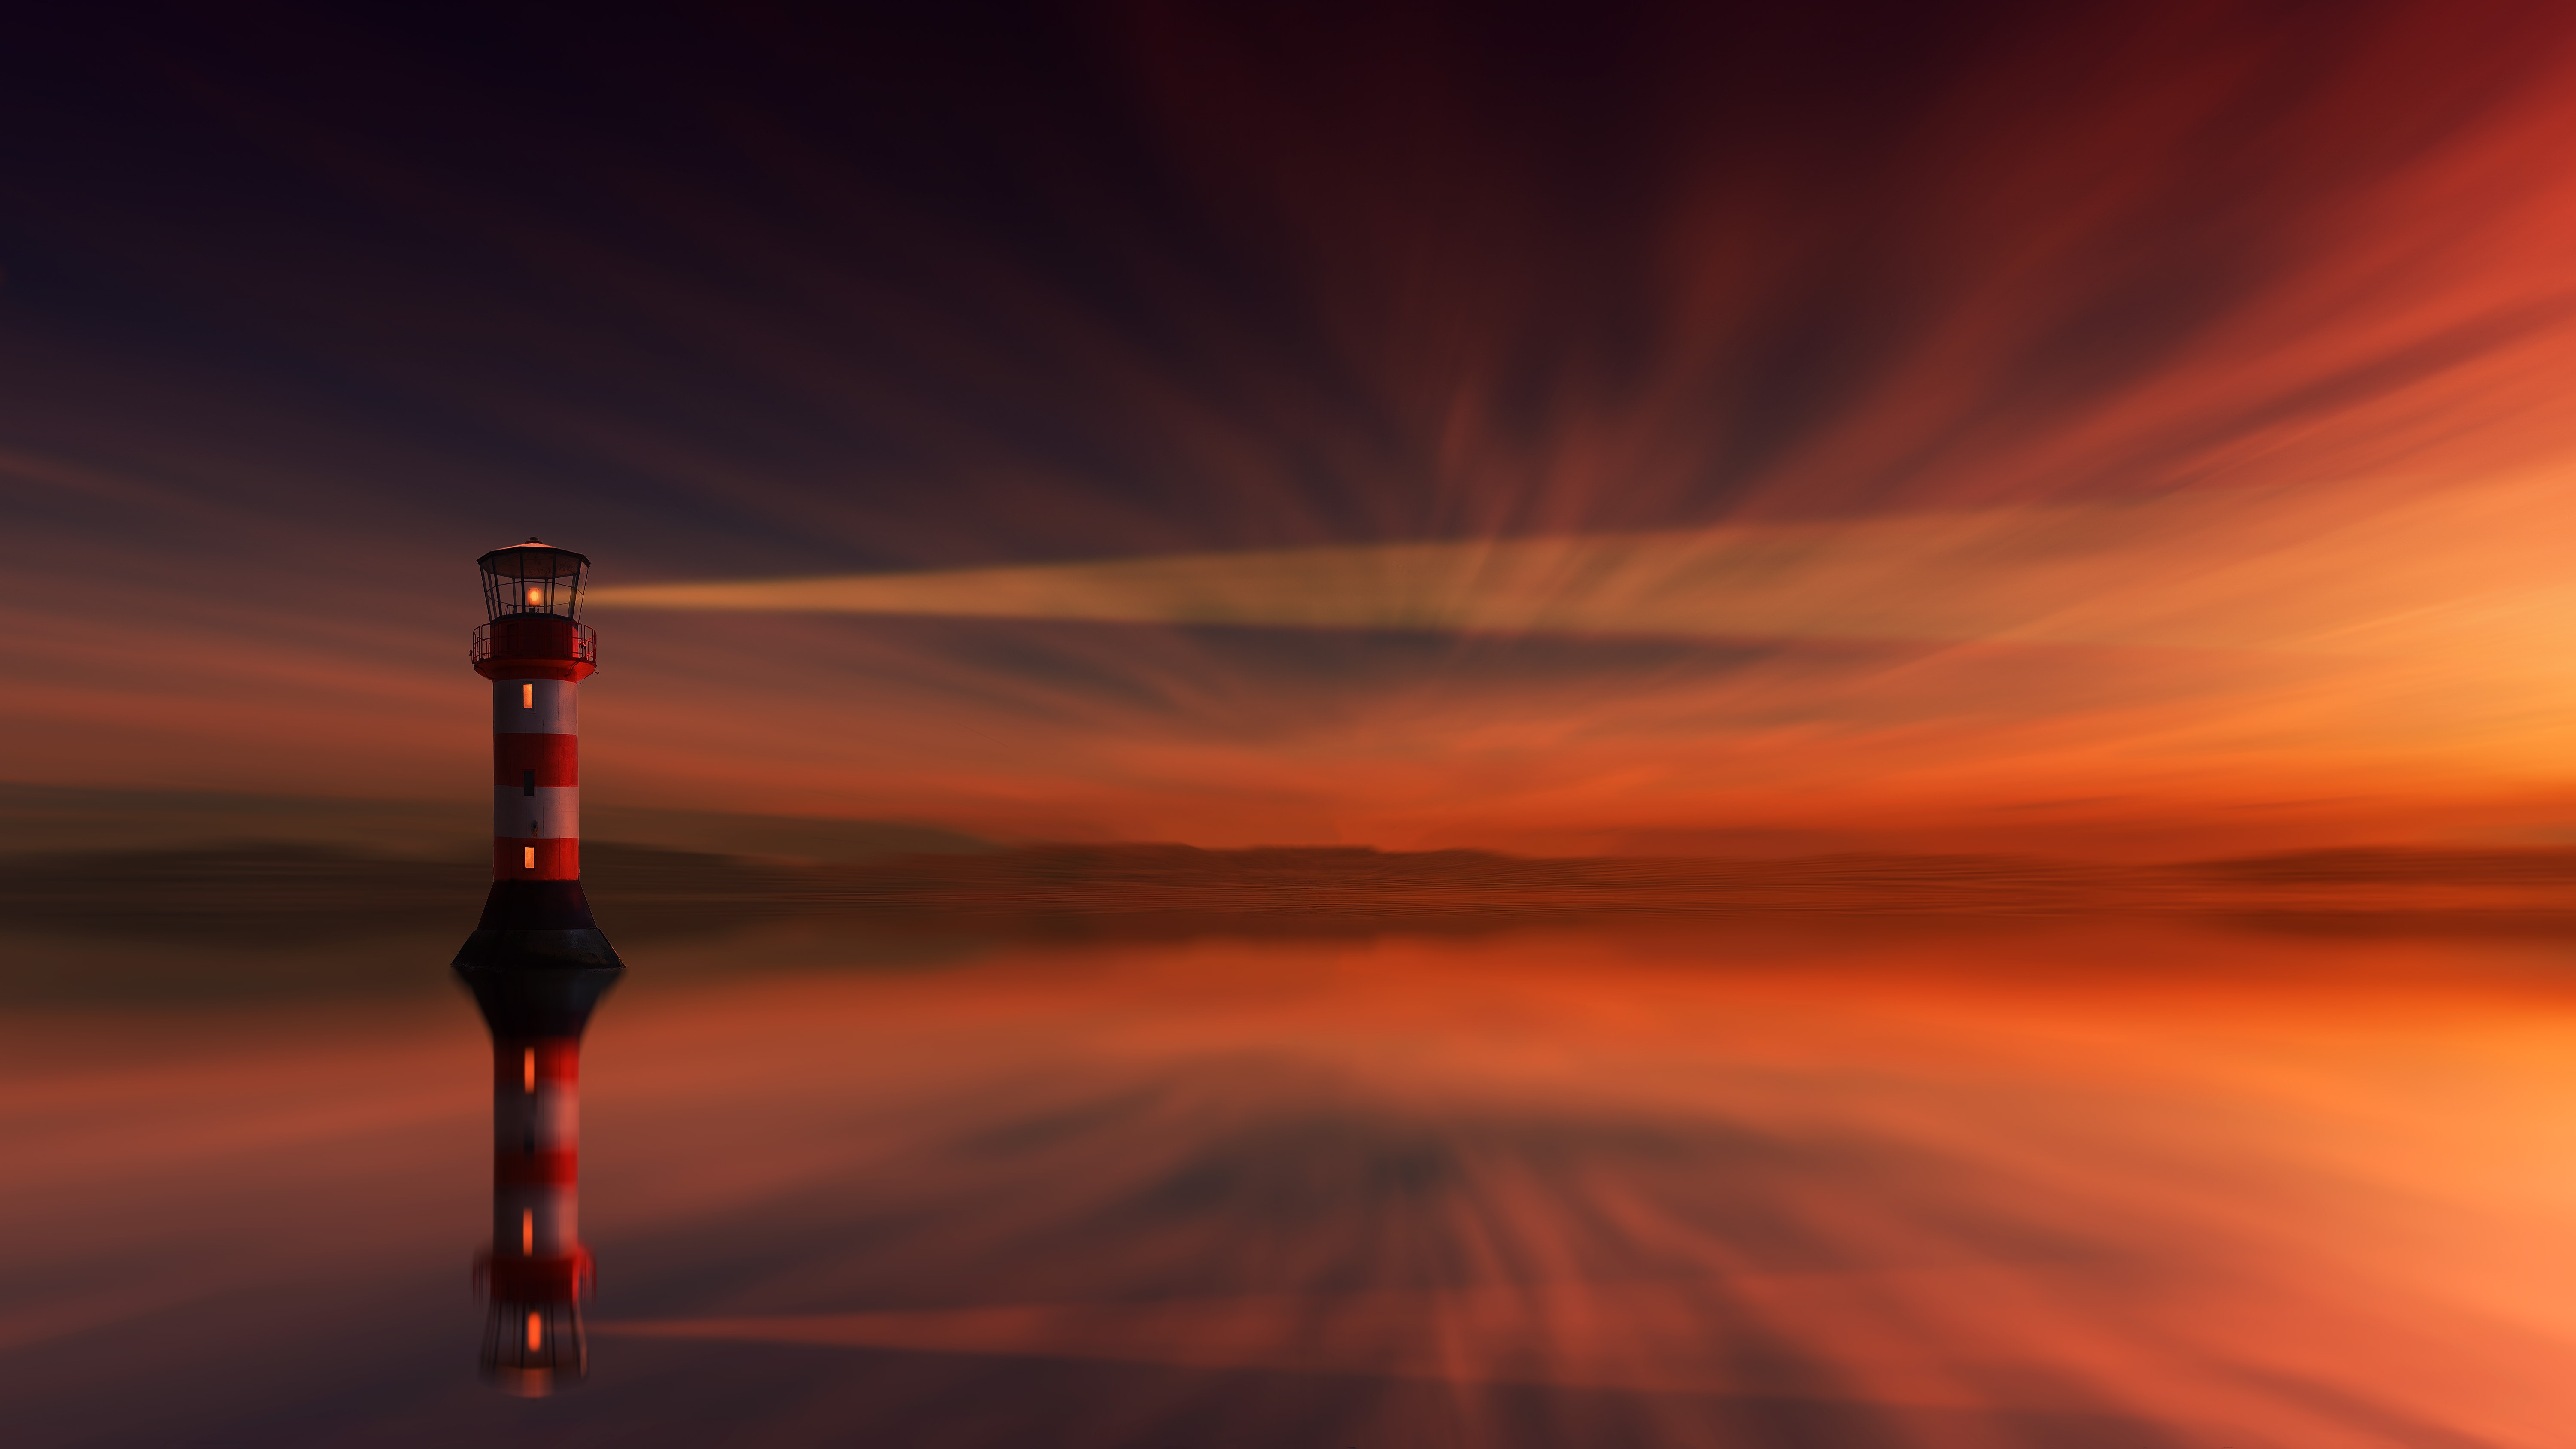 red-and-white-lighthouse-1105382